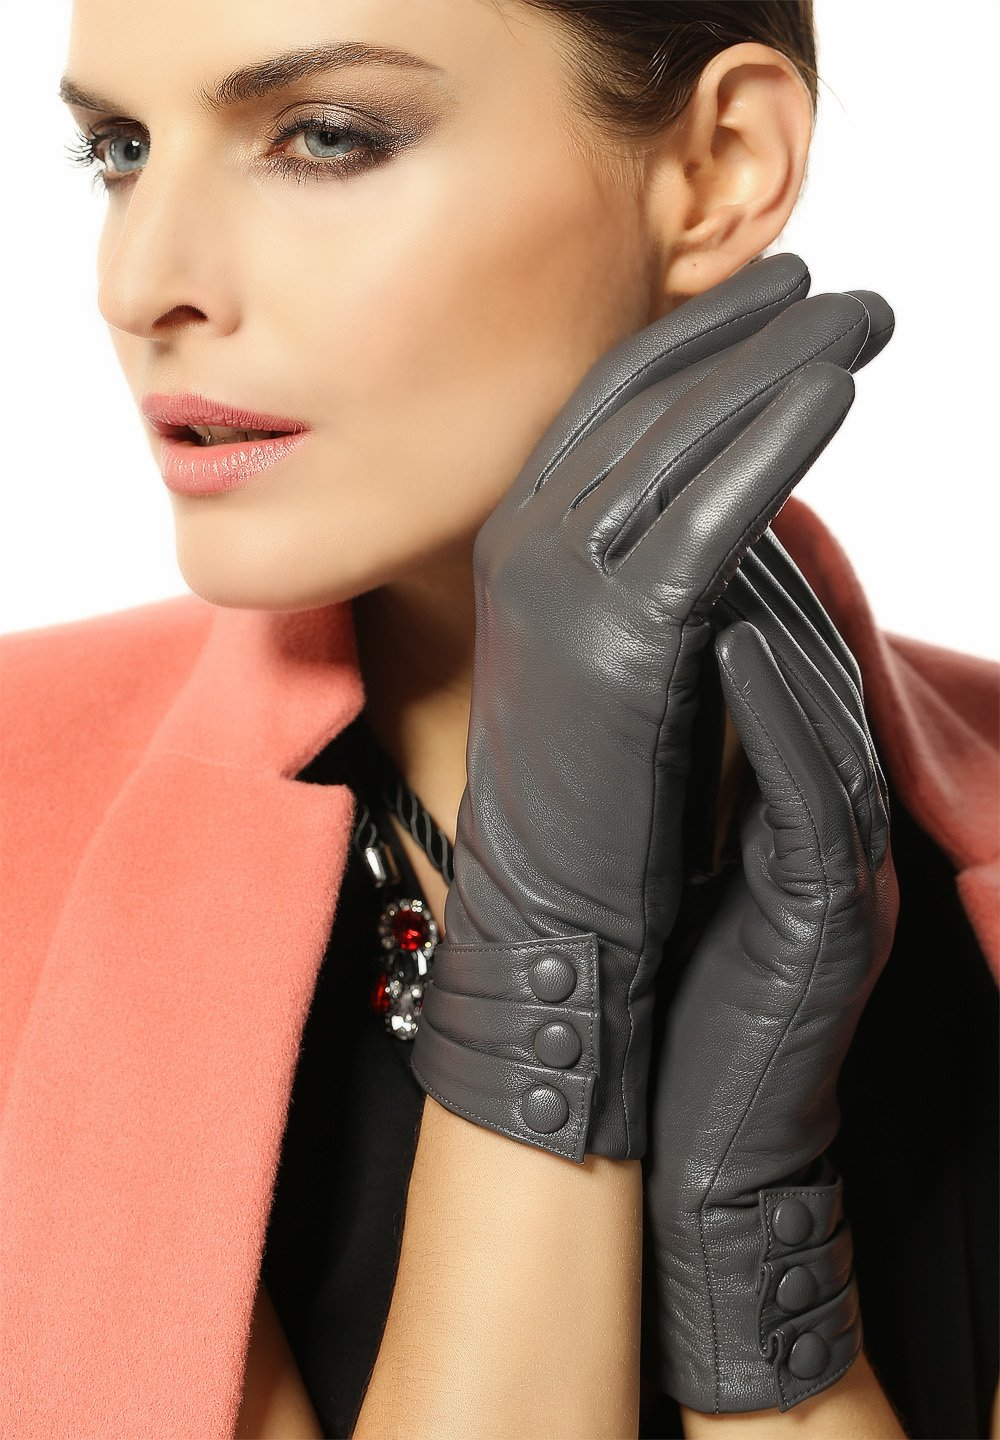 Warmen Women's Touchscreen Texting Driving Winter Warm Nappa Leather Gloves - 7 (US Standard size) - Grey (Touchscreen Function/cashmere Lining)